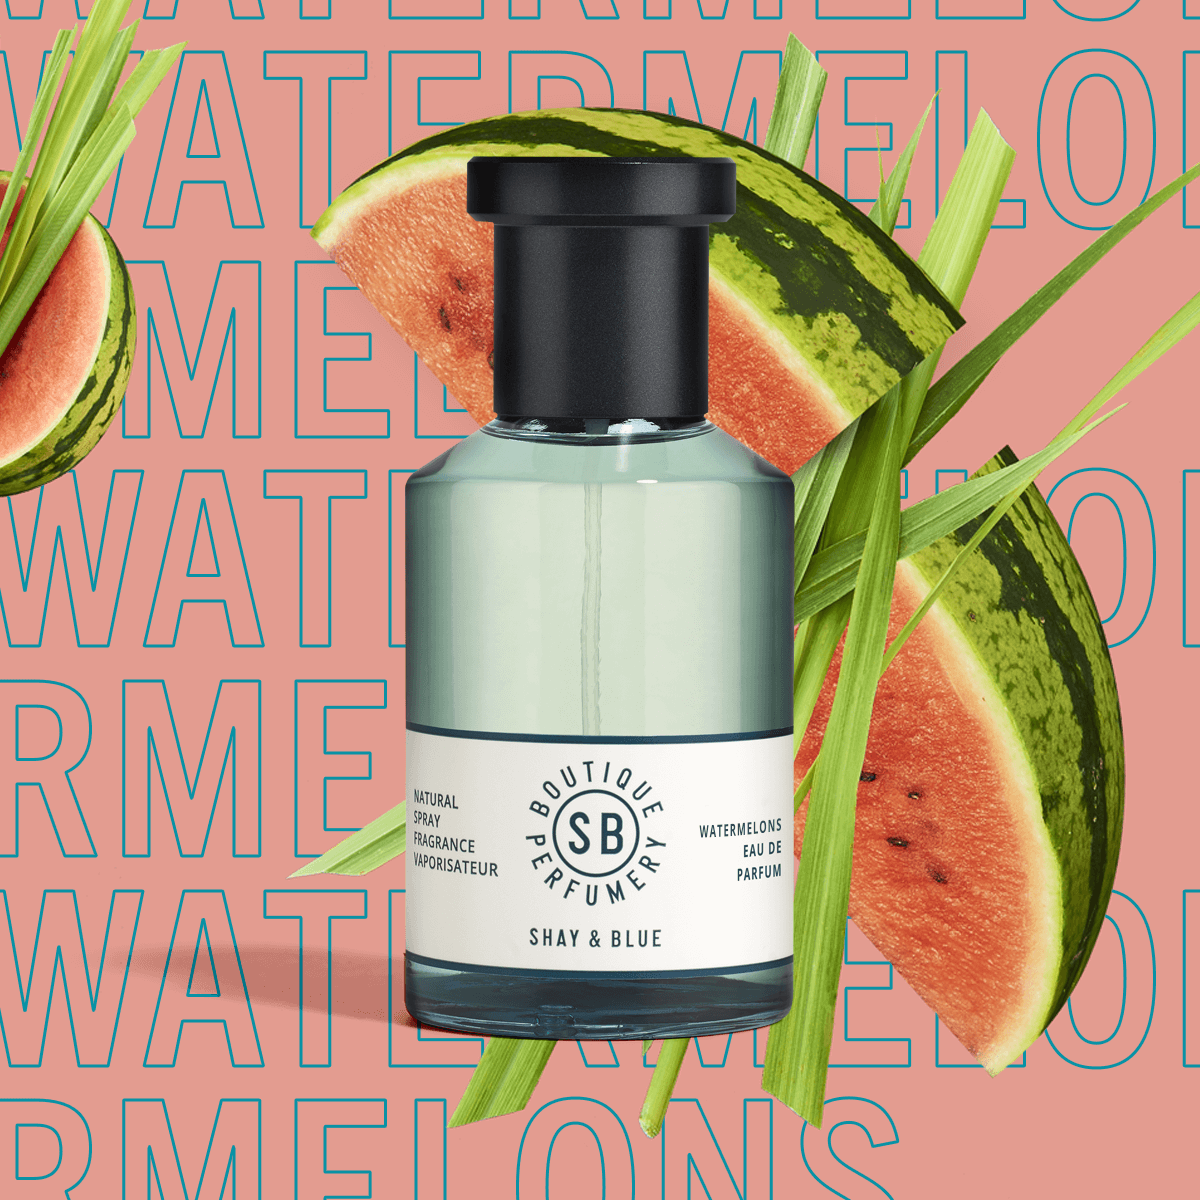 Watermelons Fragrance 100ml | Watermelon freshness with green mandarin and cut grass. | Clean All Gender Fragrance | Shay & Blue